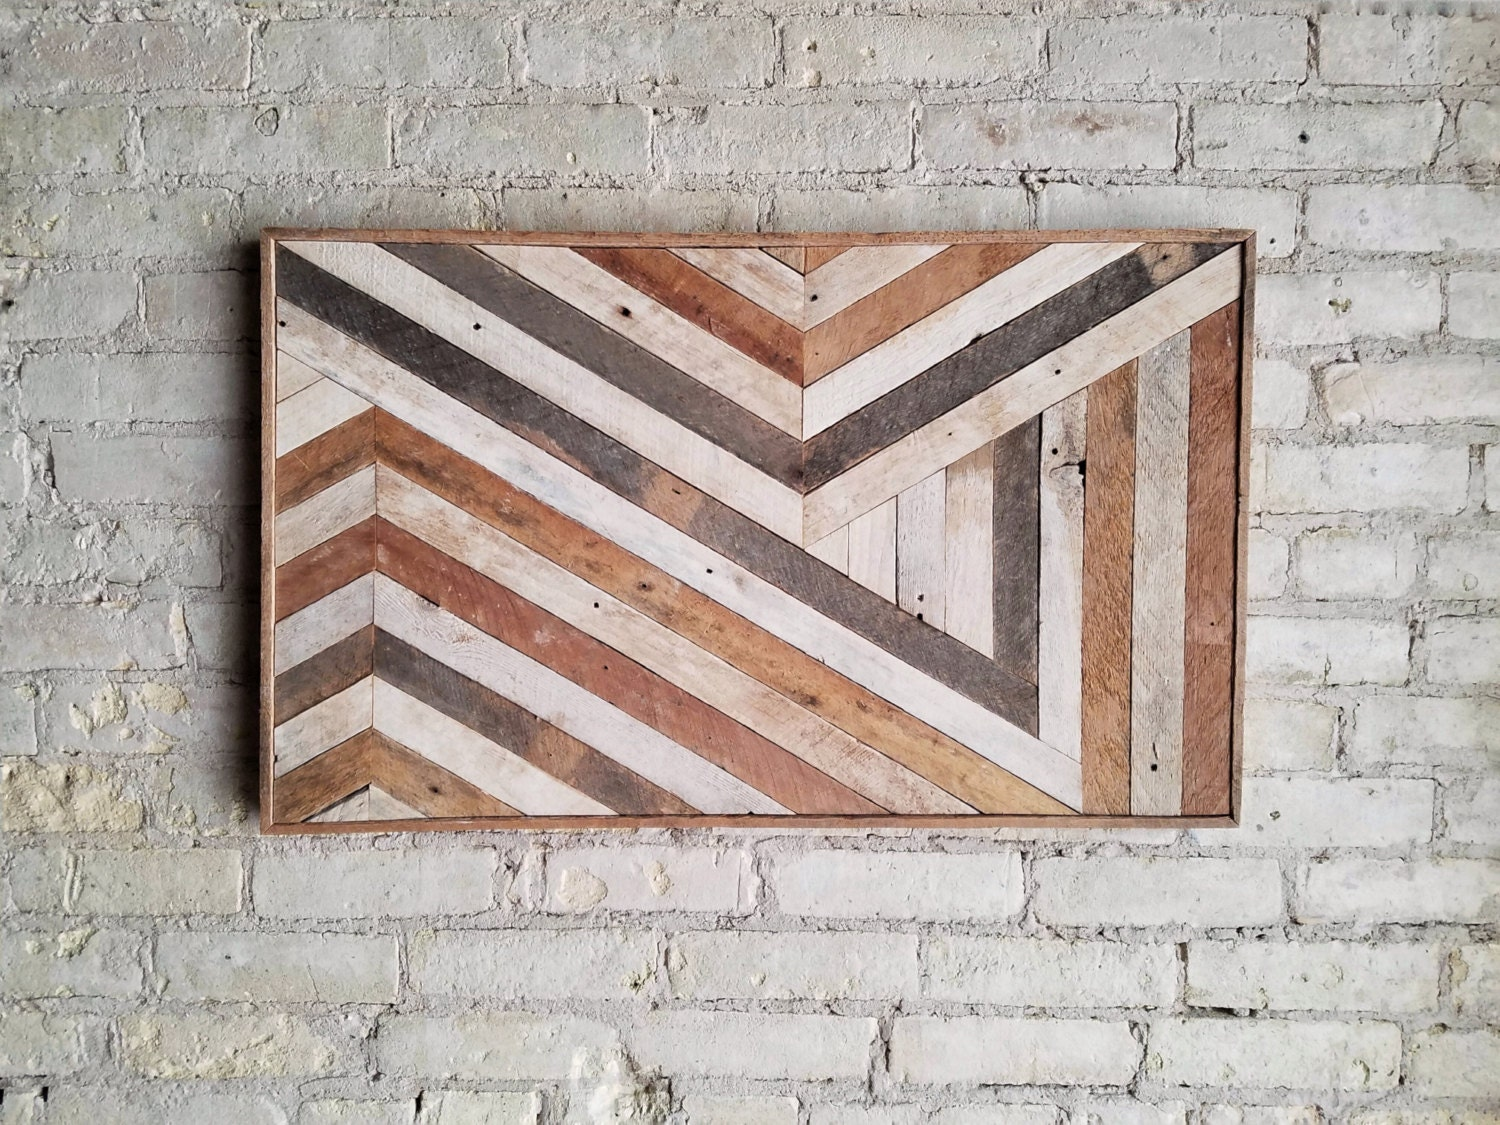 repurposing home decor wood upcycling crafts wall art piece hometalk reclaimed